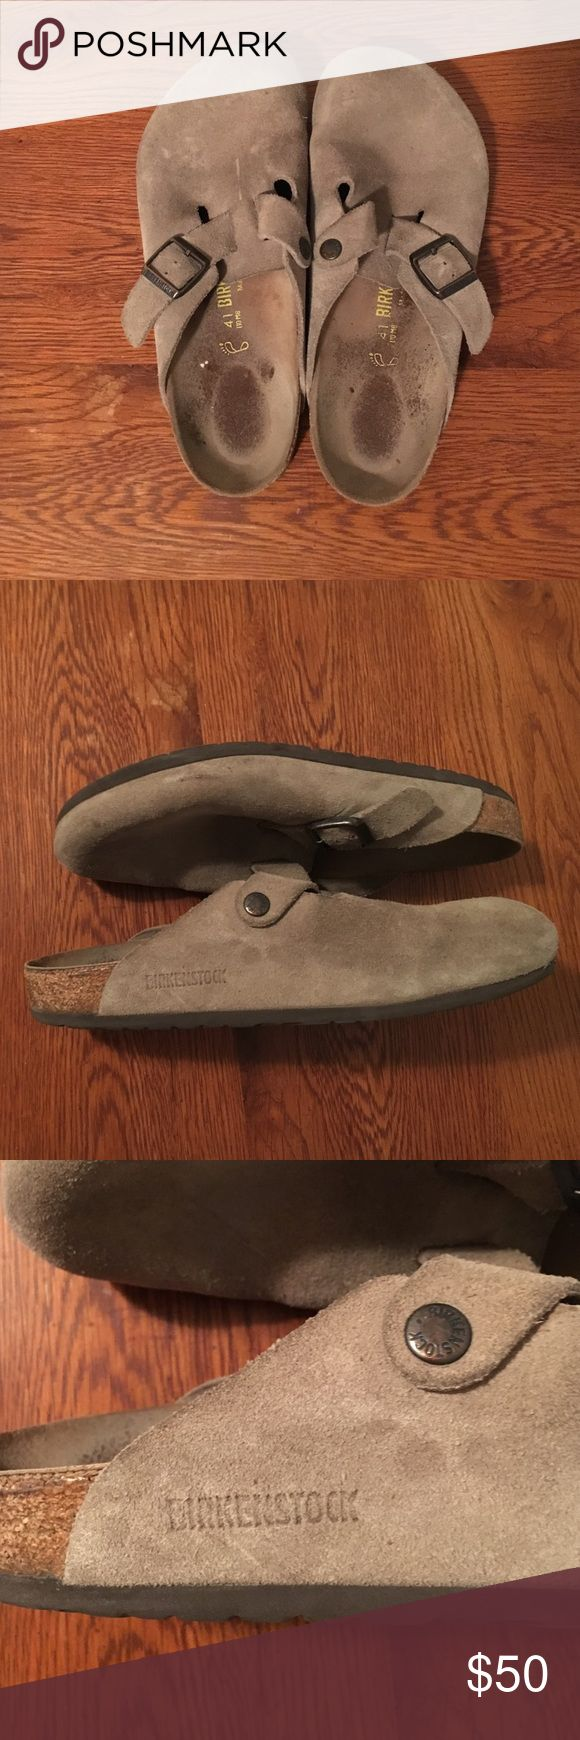 Birkenstock Boston Suede Clogs for sale! Lovingly warn Boston Suede Birkenstock Clog! So comfy, classic and awesome! Great deal! Birkenstock Shoes Mules & Clogs